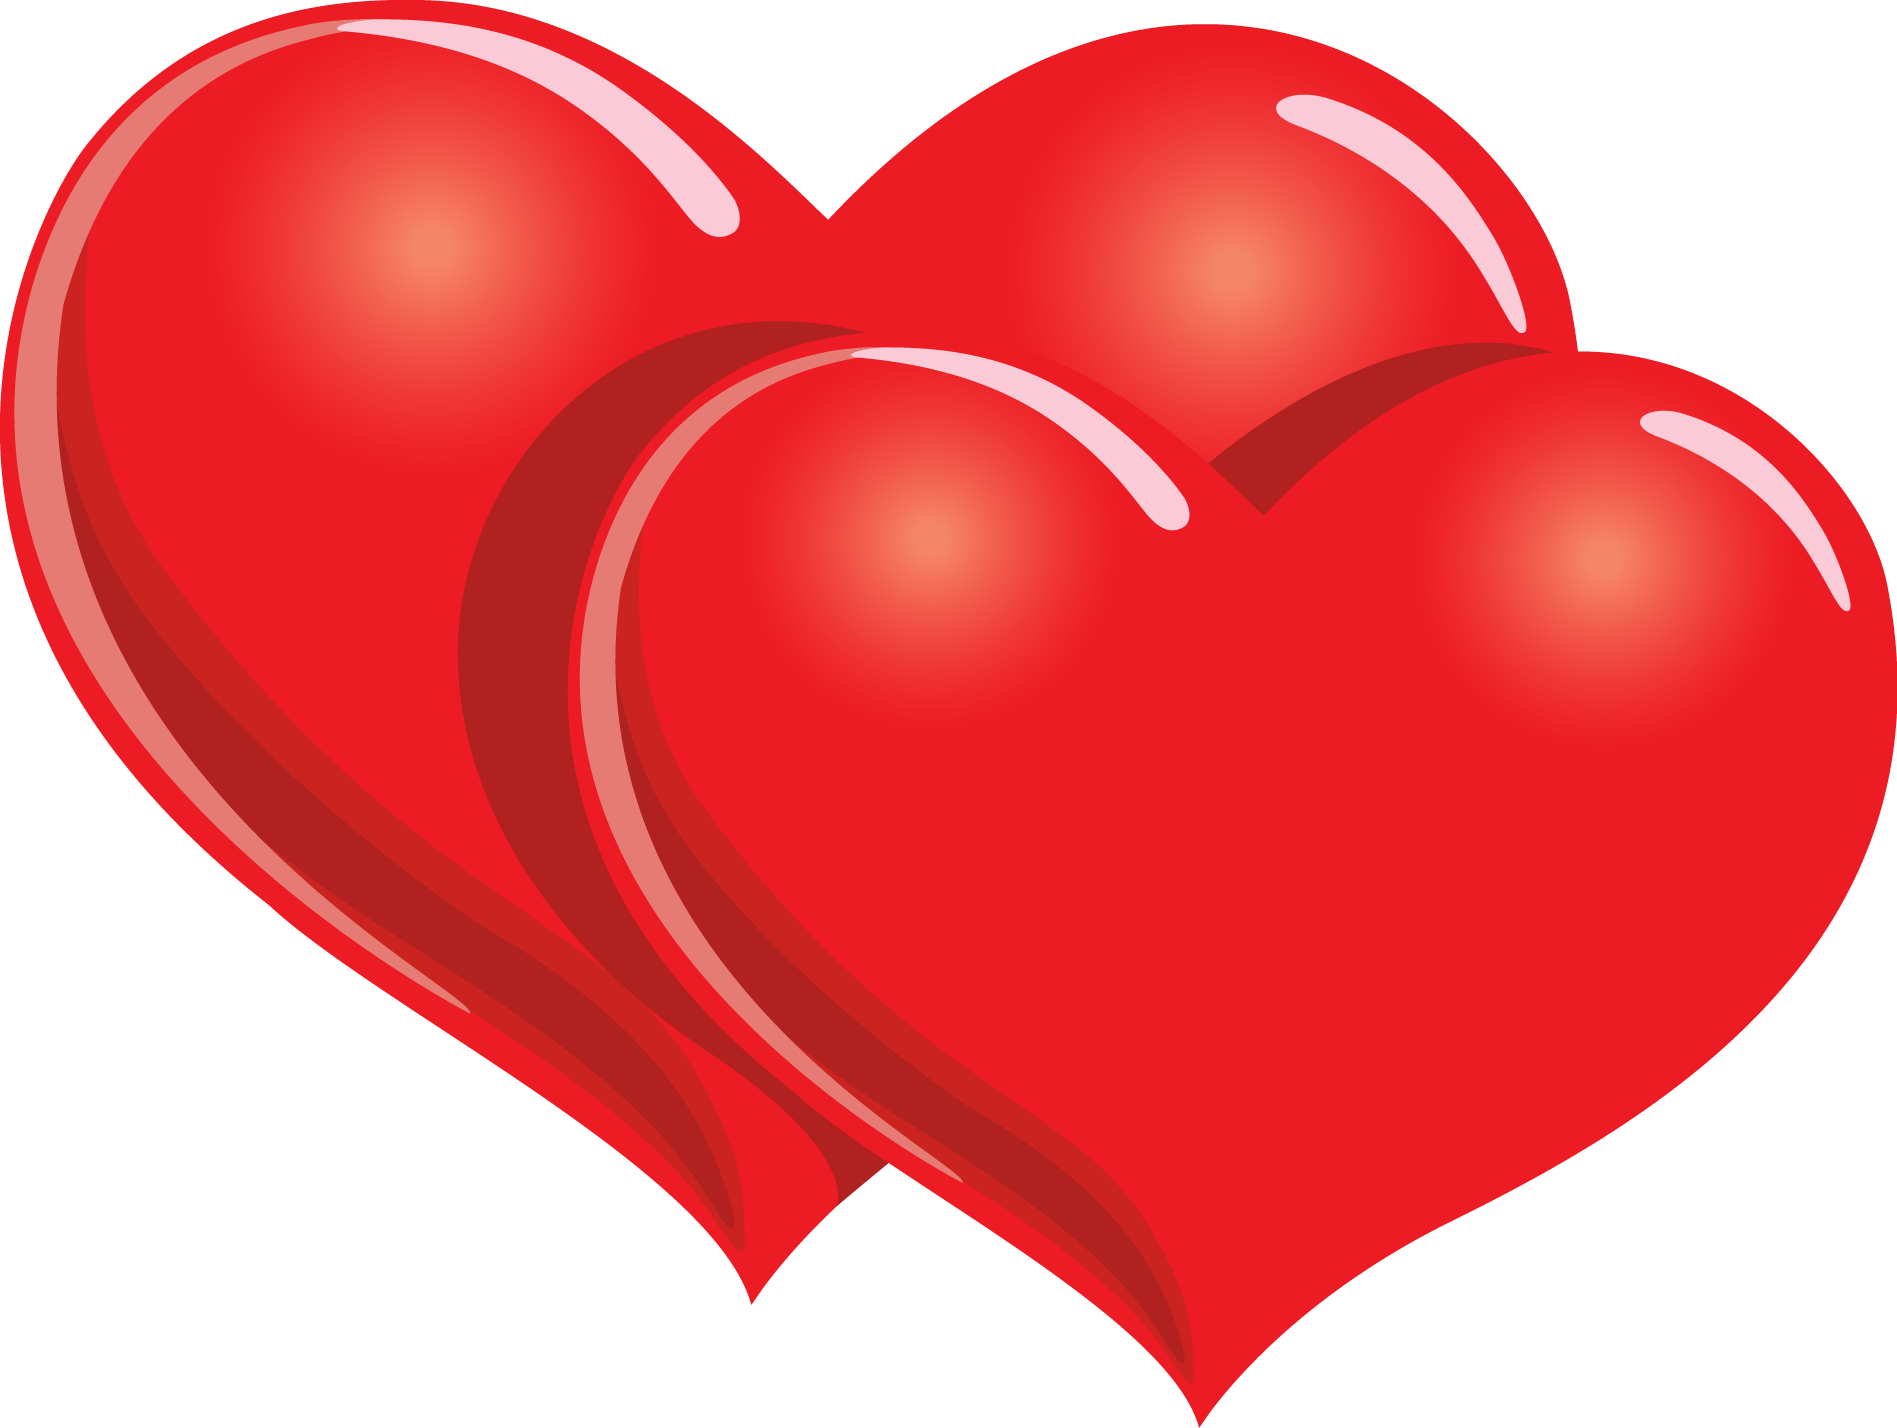 14 Red Heart Symbol Free Cliparts That You Can Download To You